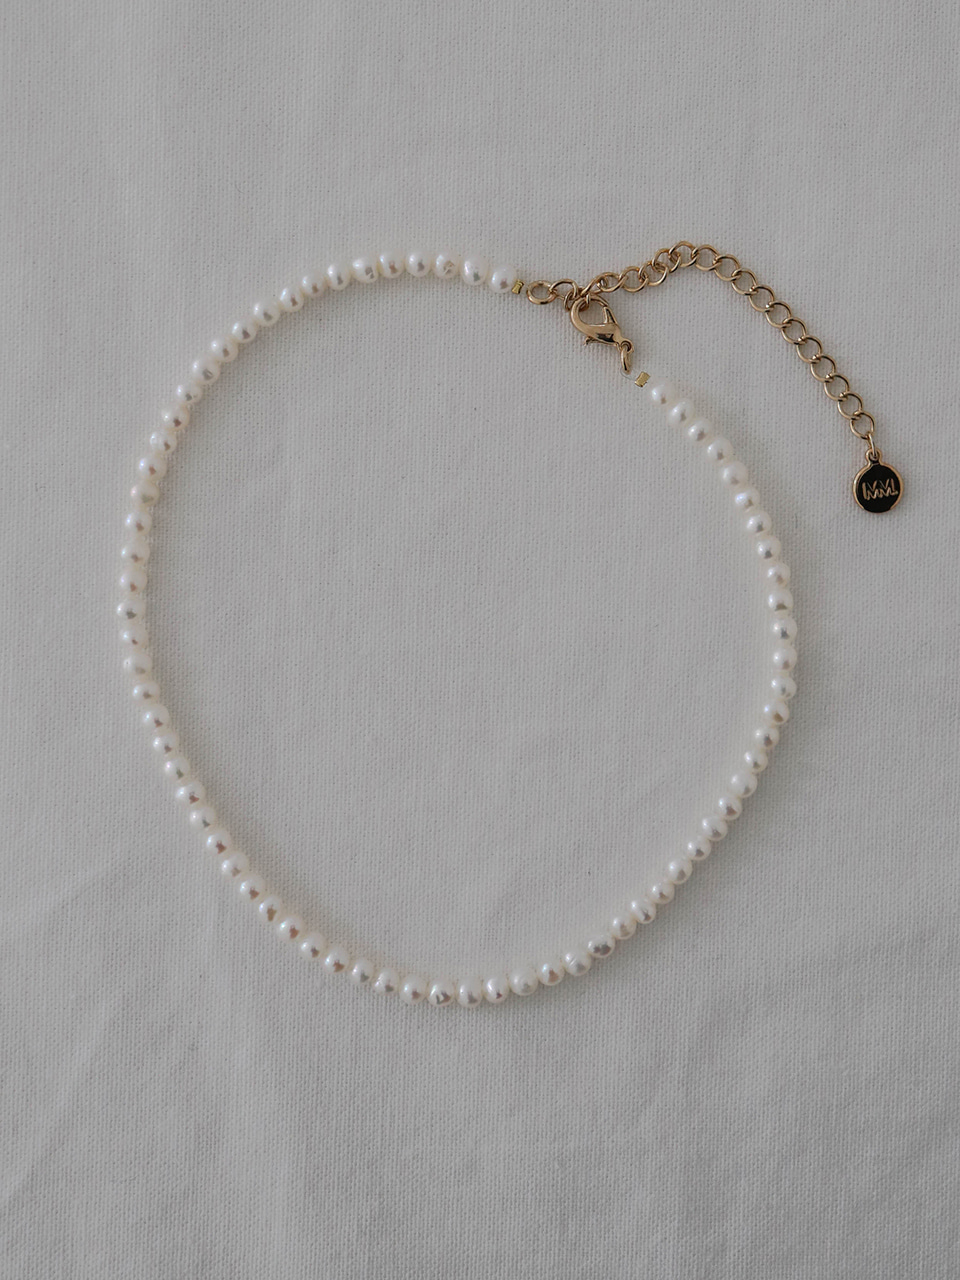 basic pearl necklace (choker)